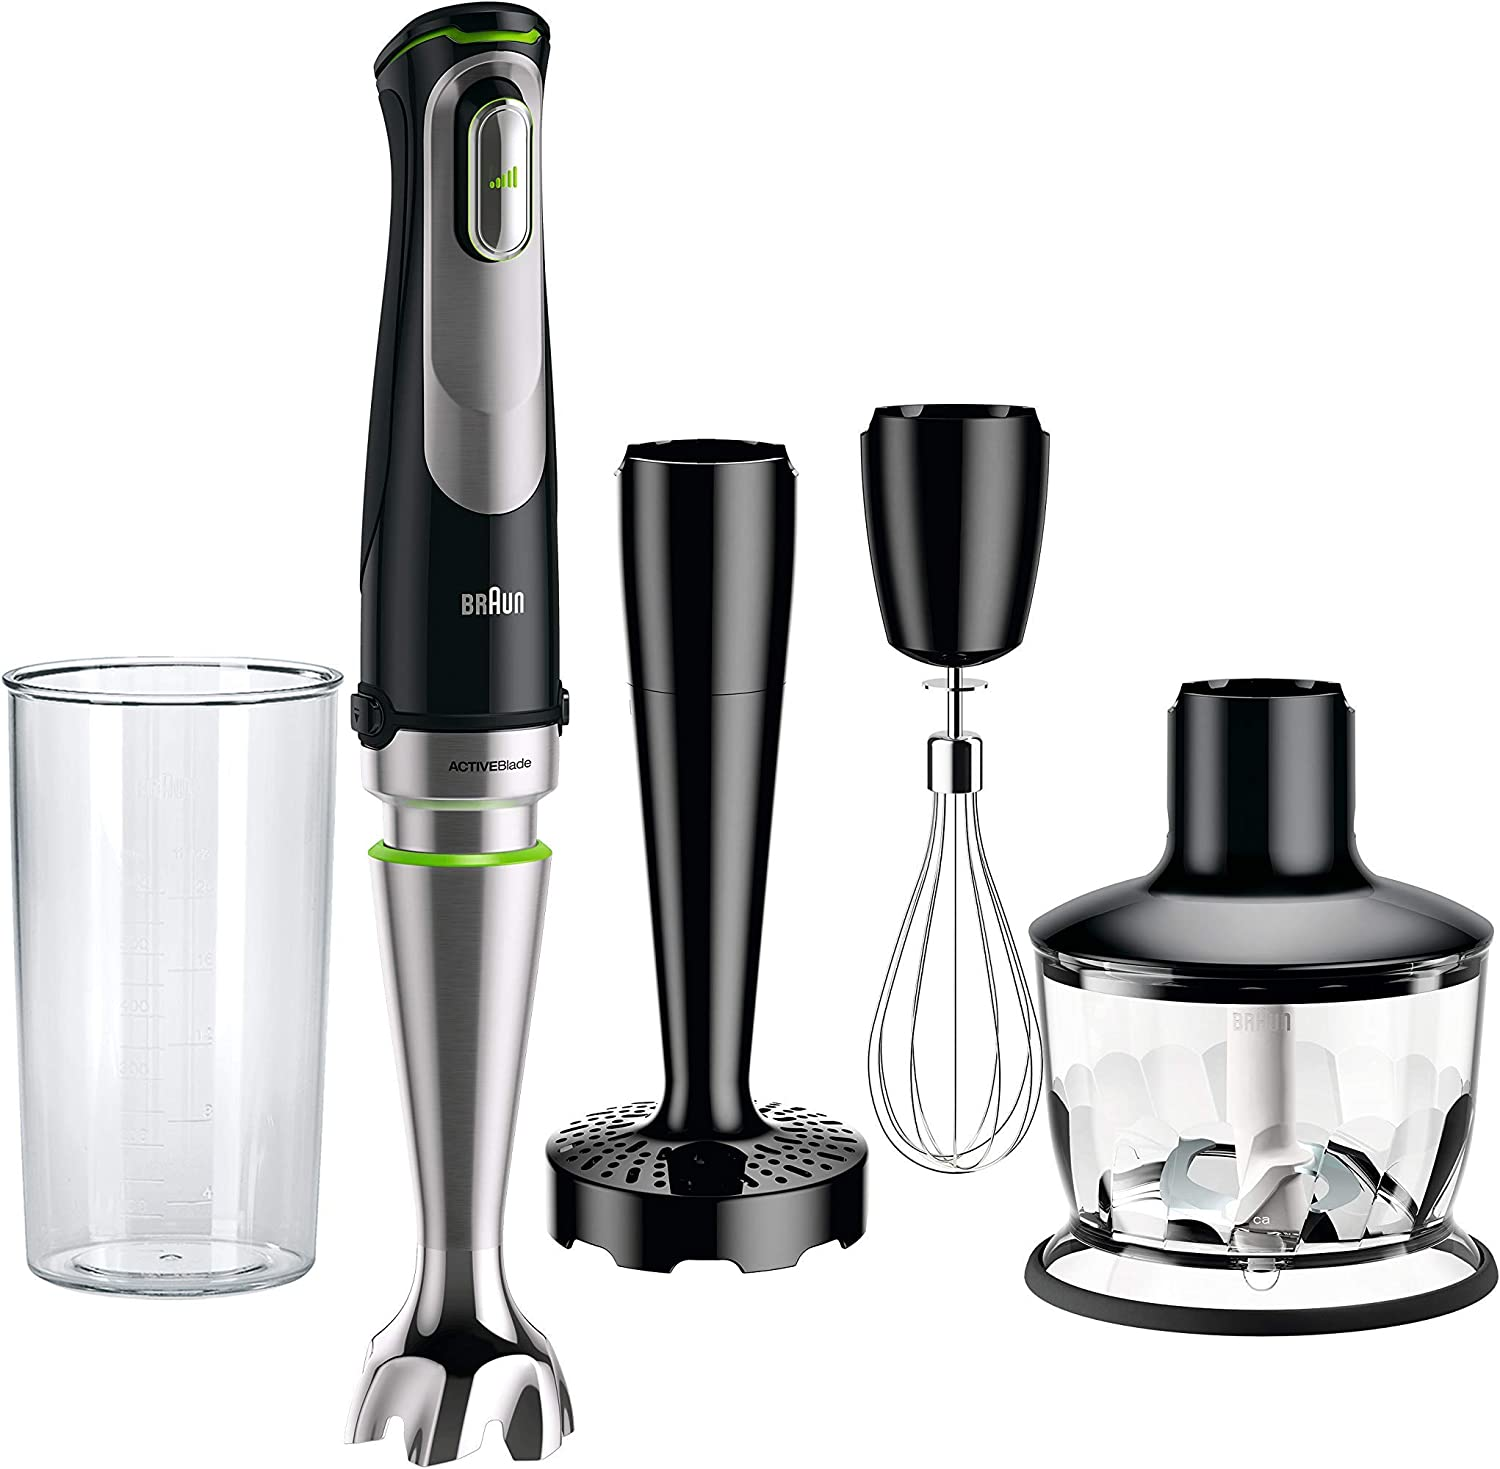 Braun MQ9037X Multiquick 9 ACTIVEBlade Technology Hand Blender (Renewed)